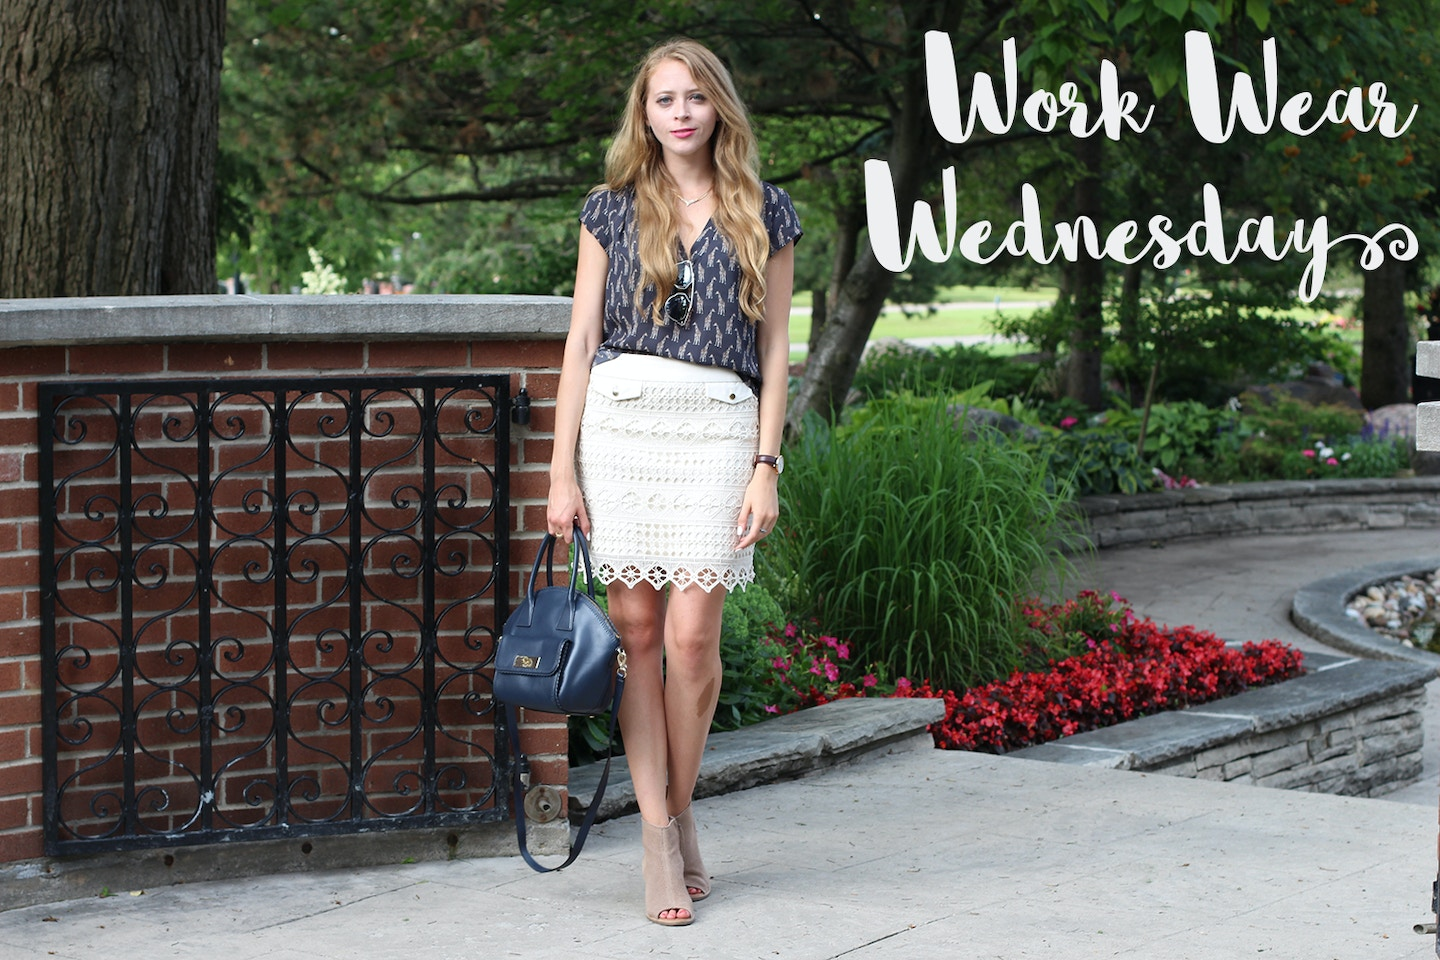 Workwear Wednesday: How to wear a lace skirt to the office